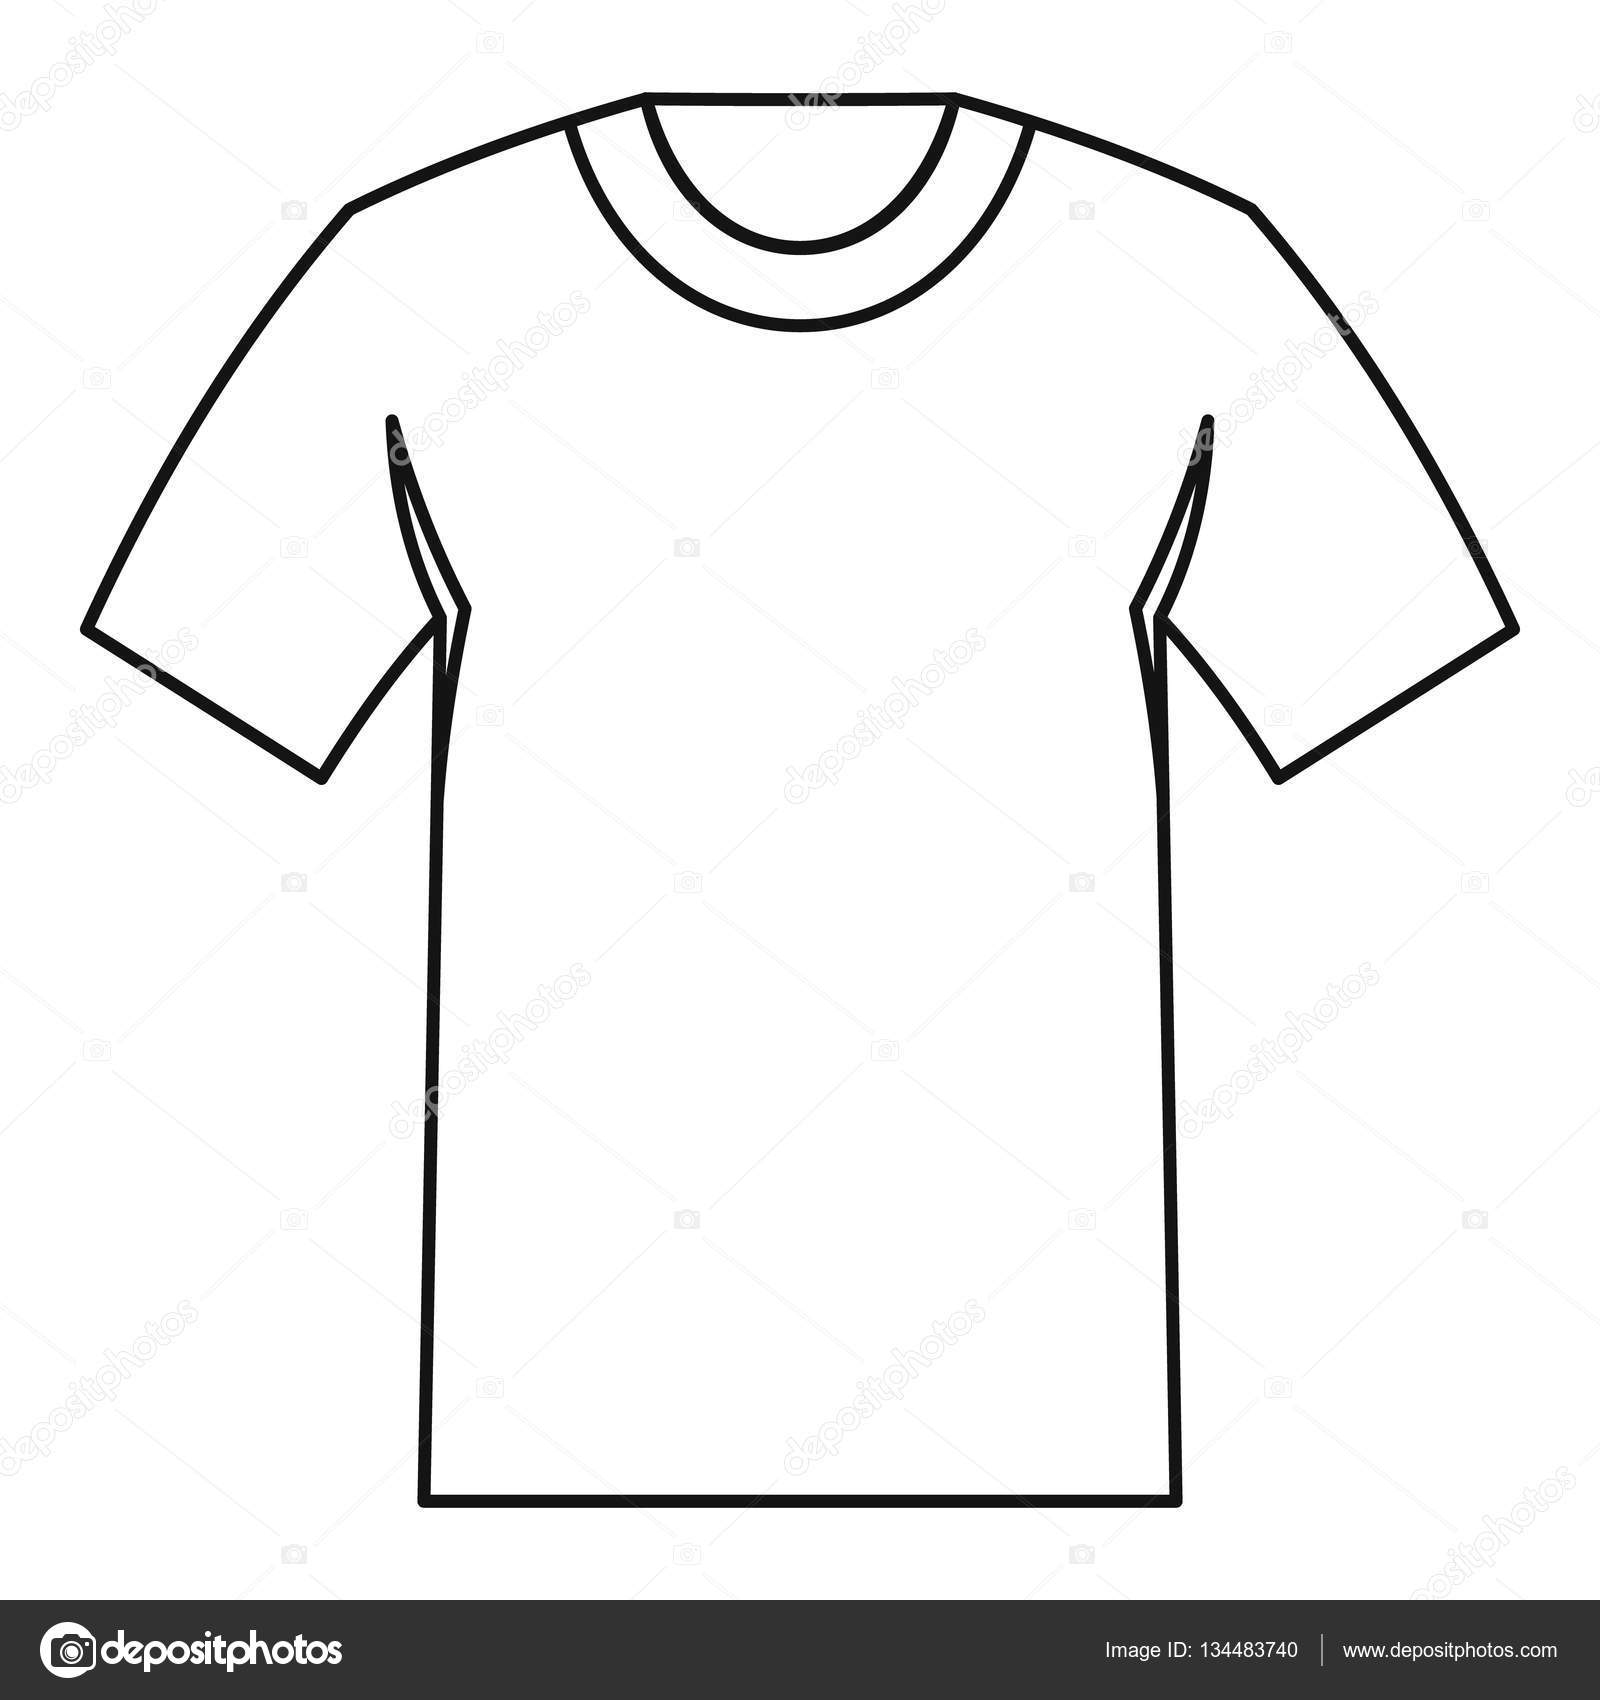 tshirt icon outline style stock vector c ylivdesign 134483740 https depositphotos com 134483740 stock illustration tshirt icon outline style html